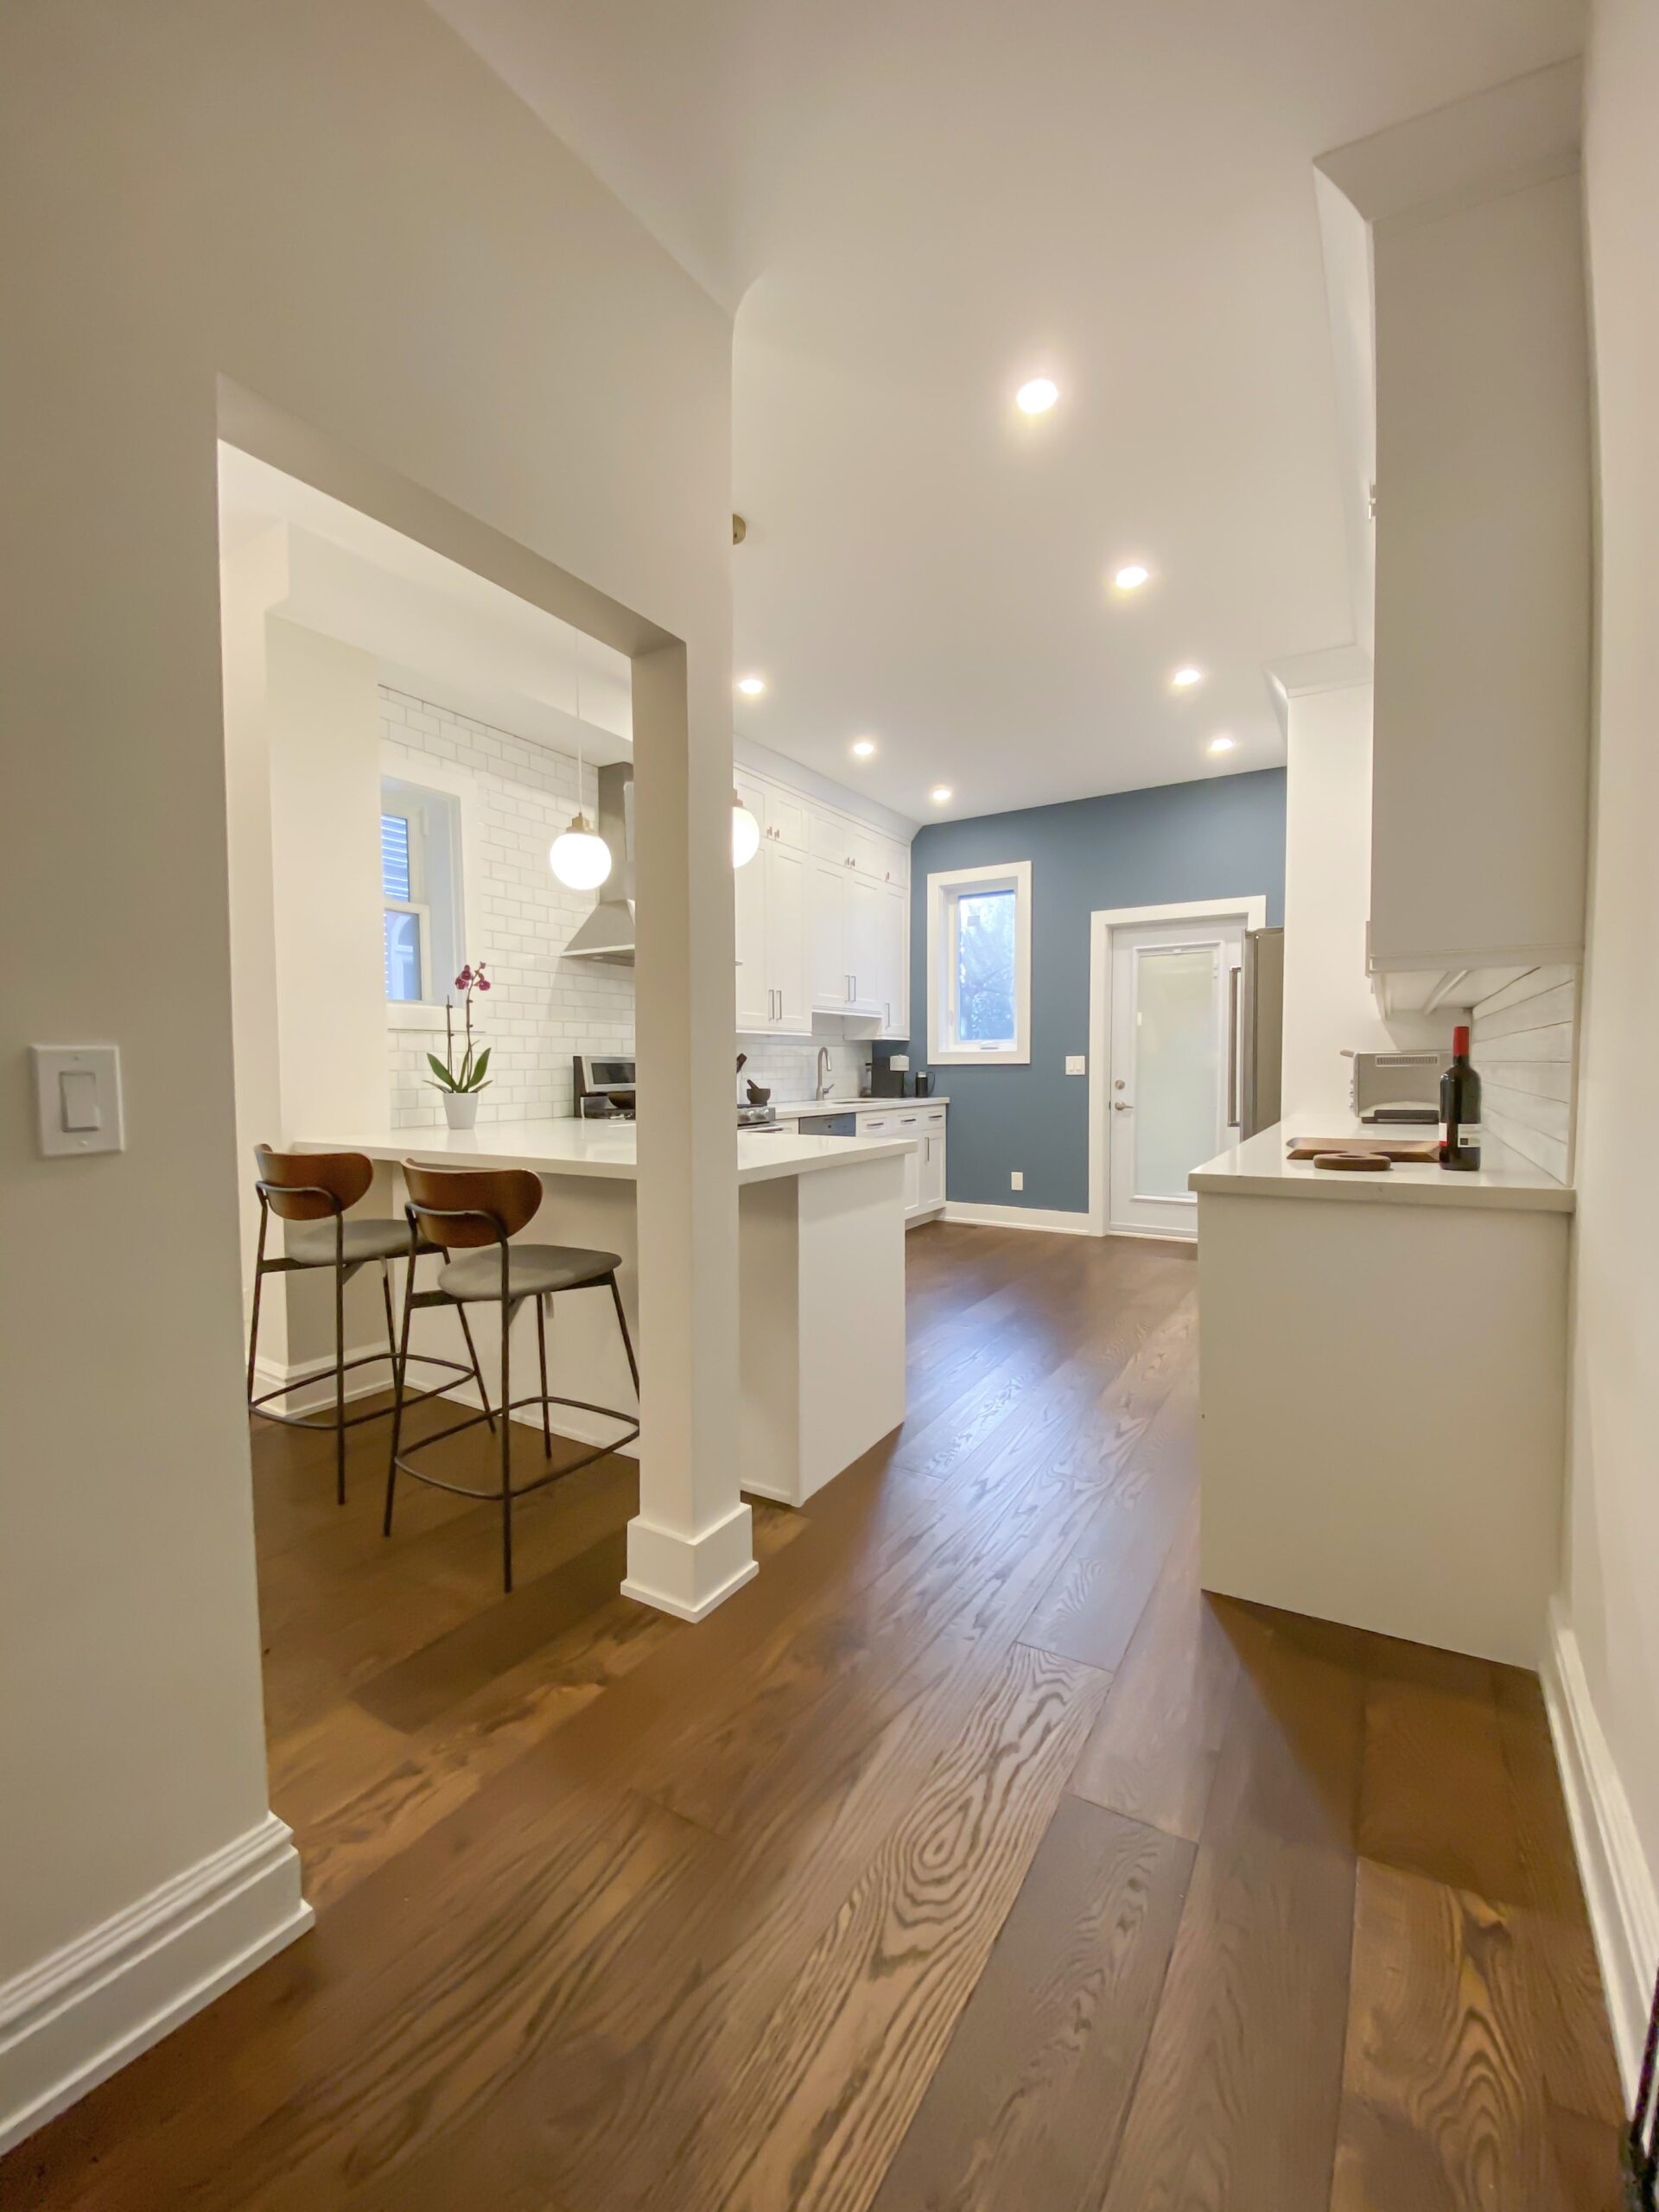 Shaw St. – Bickford Park Toronto Victorian Kitchen Renovation - Featured Image